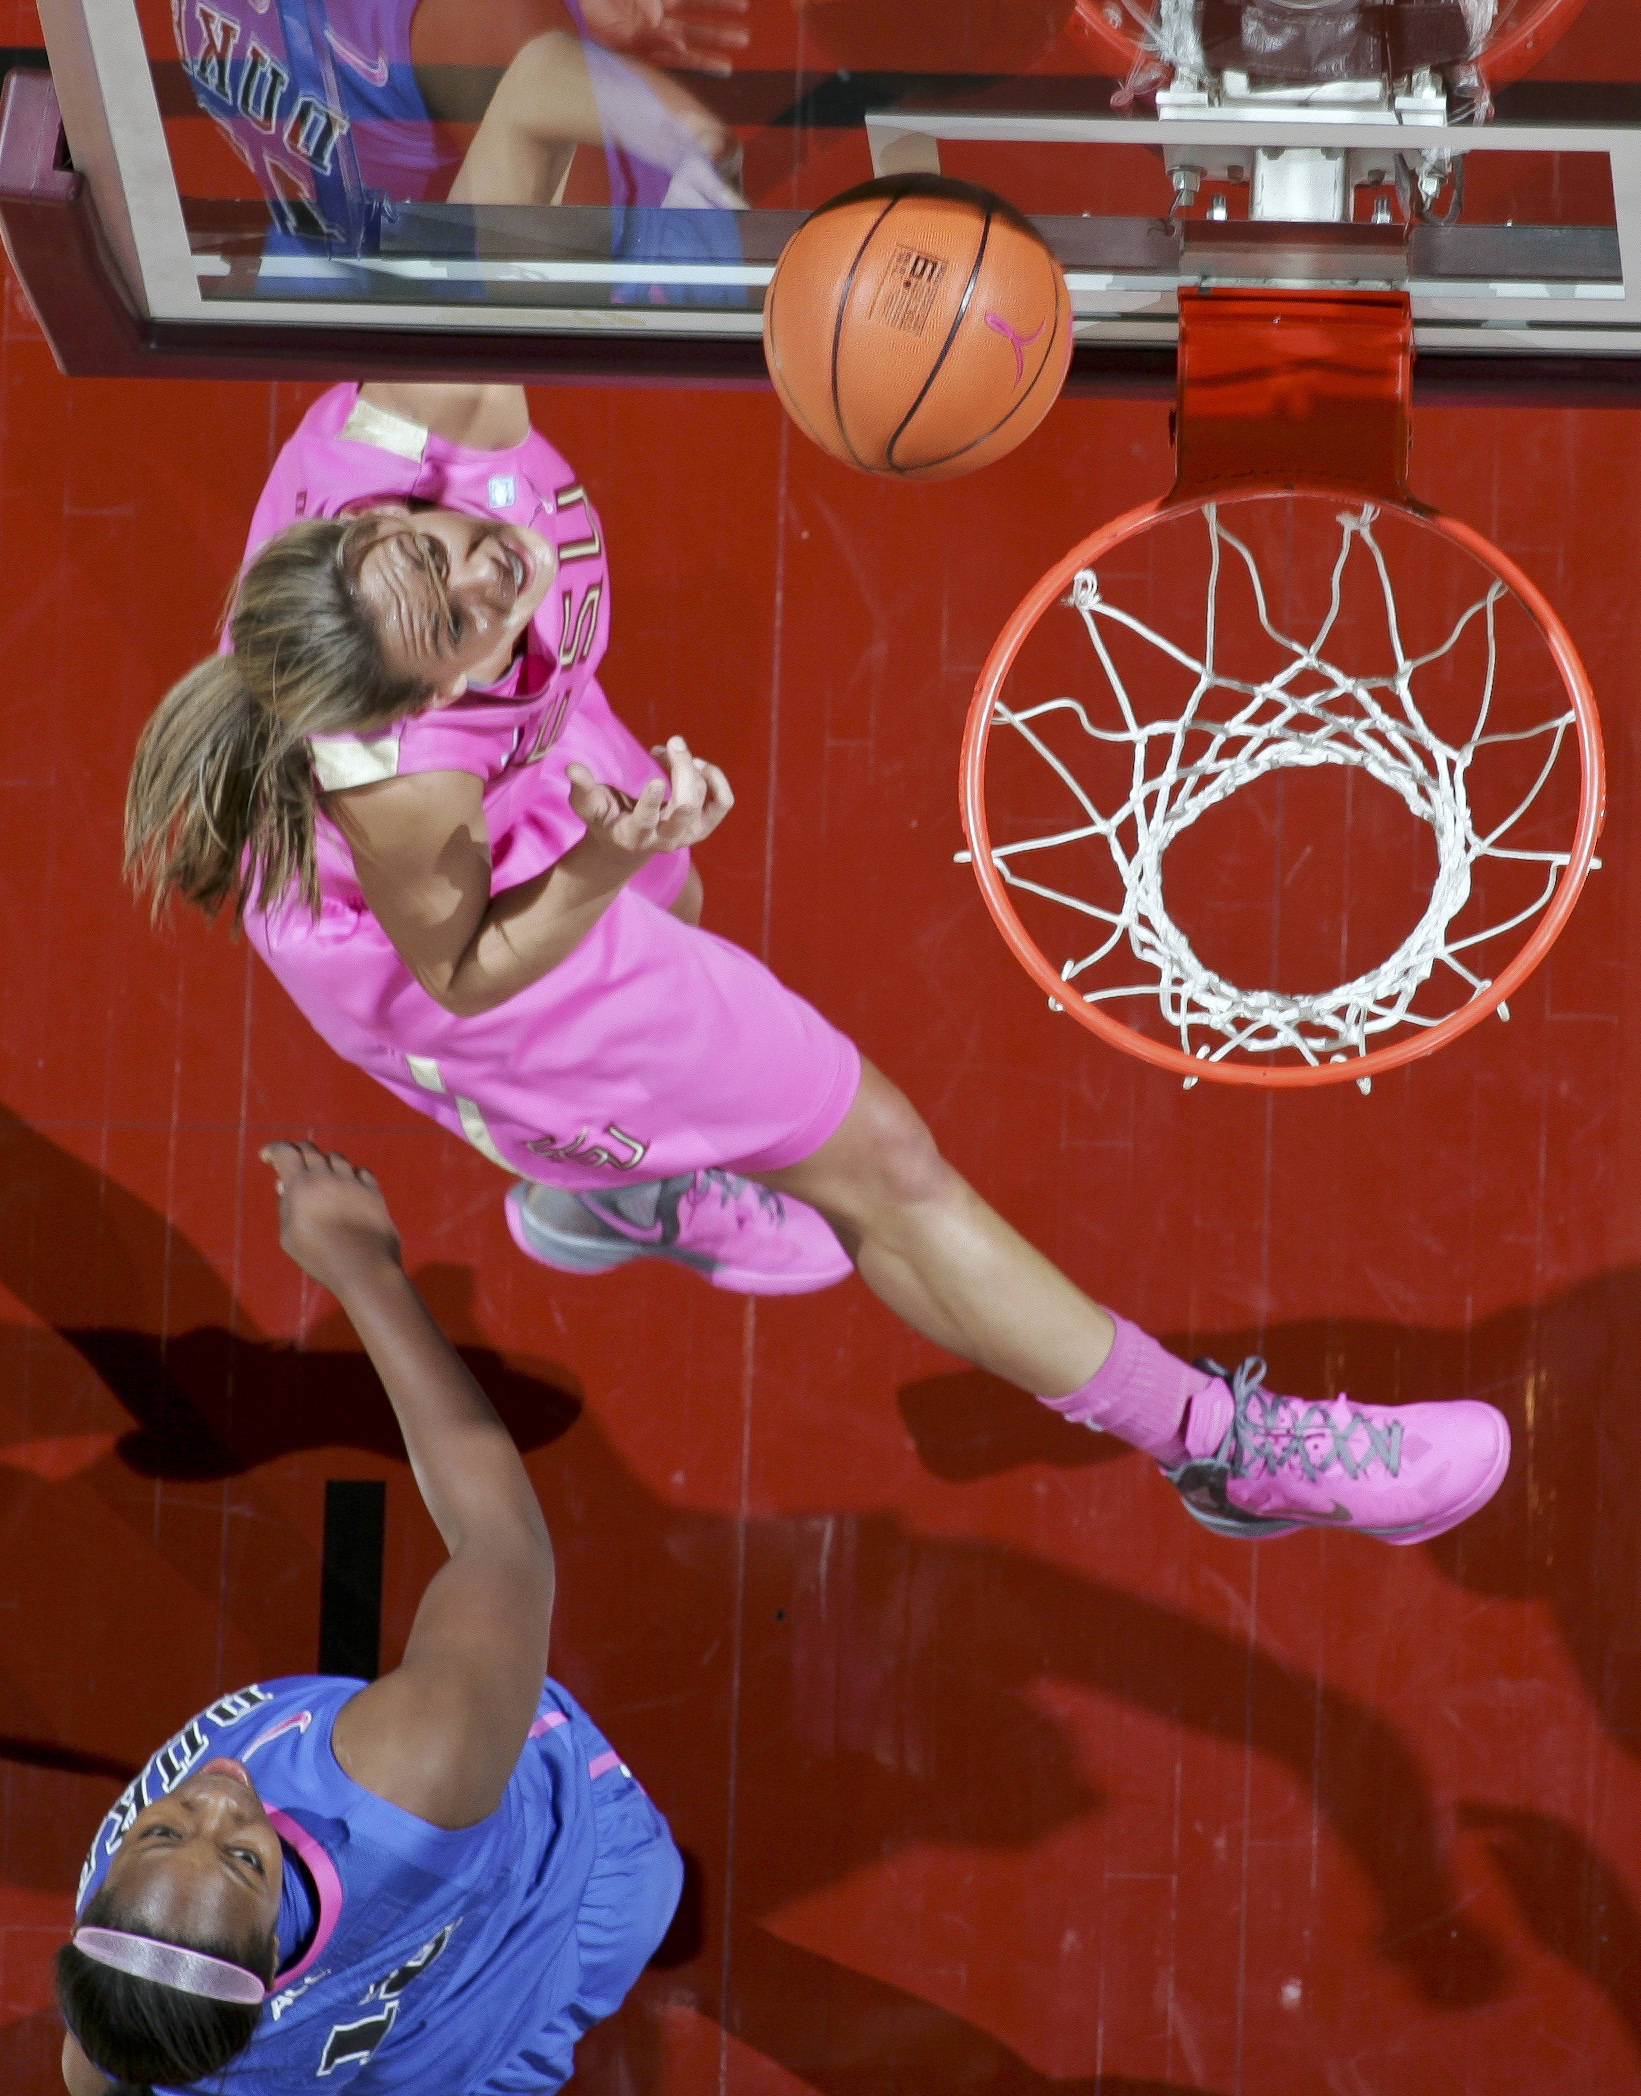 Florida State's Alexa Deluzio, top, makes a layup after getting past Duke's Chelsea Gray. (AP Photo/Phil Sears)